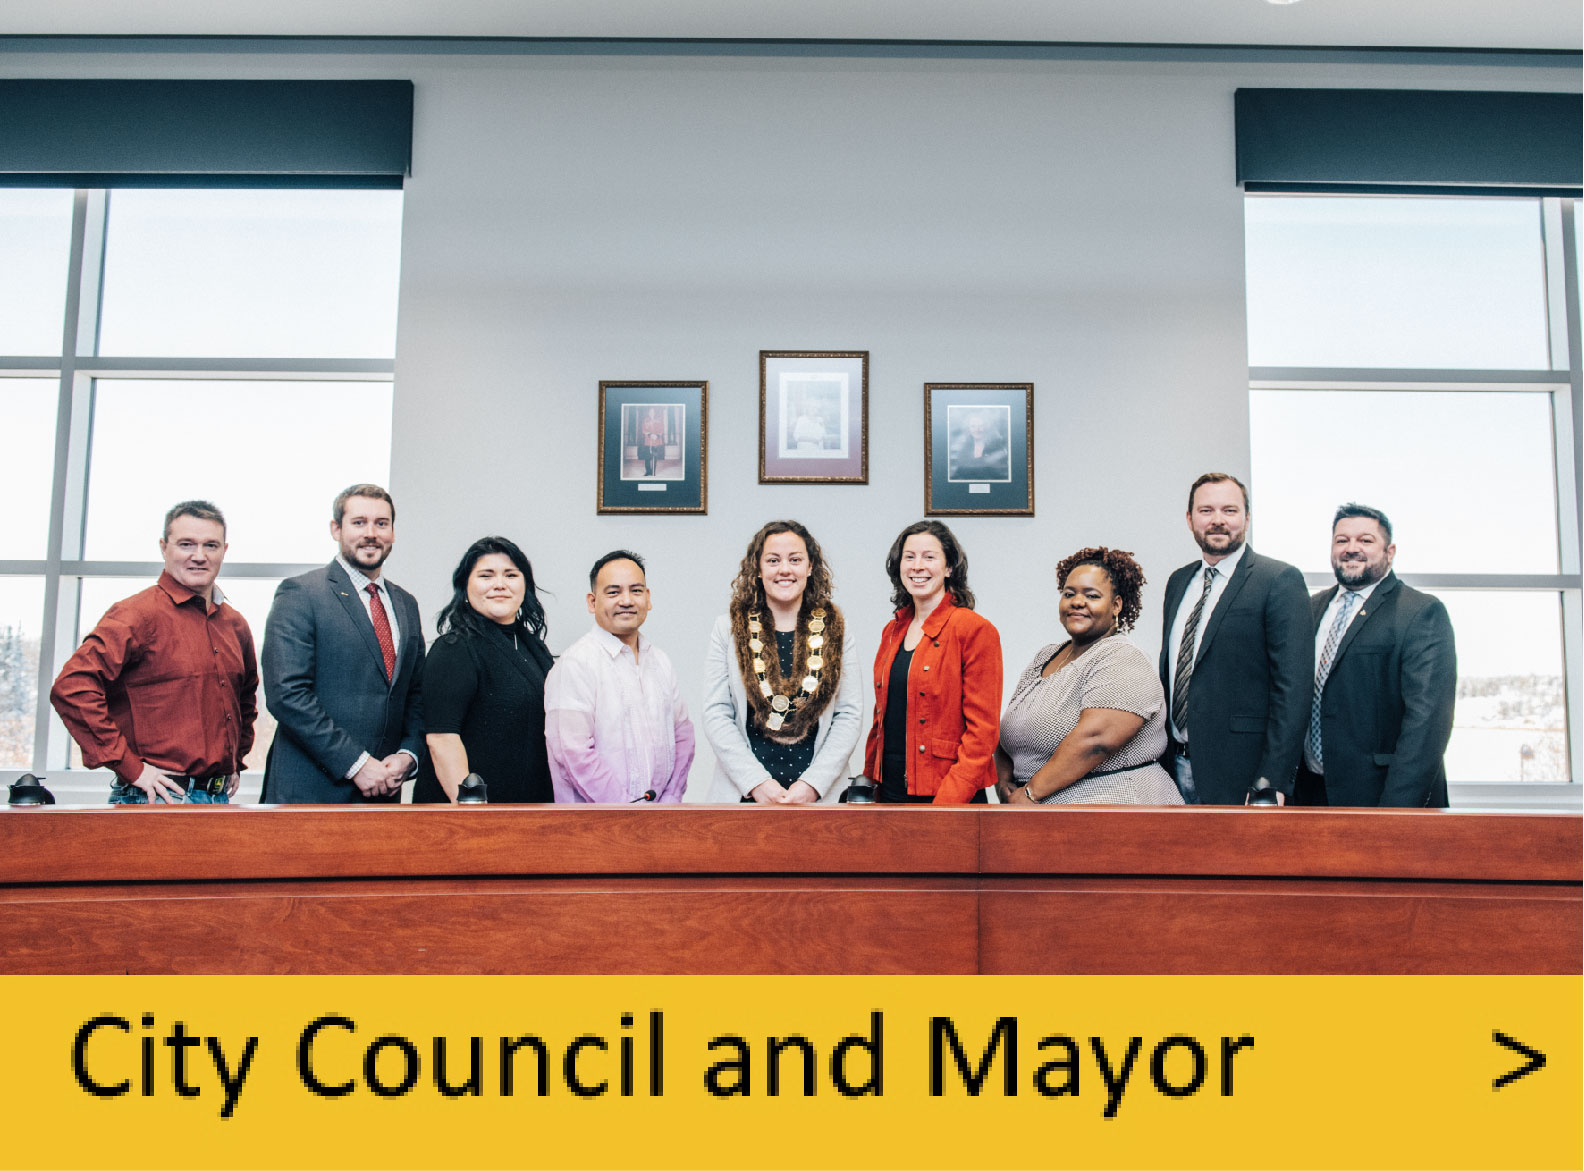 View our Council Members page